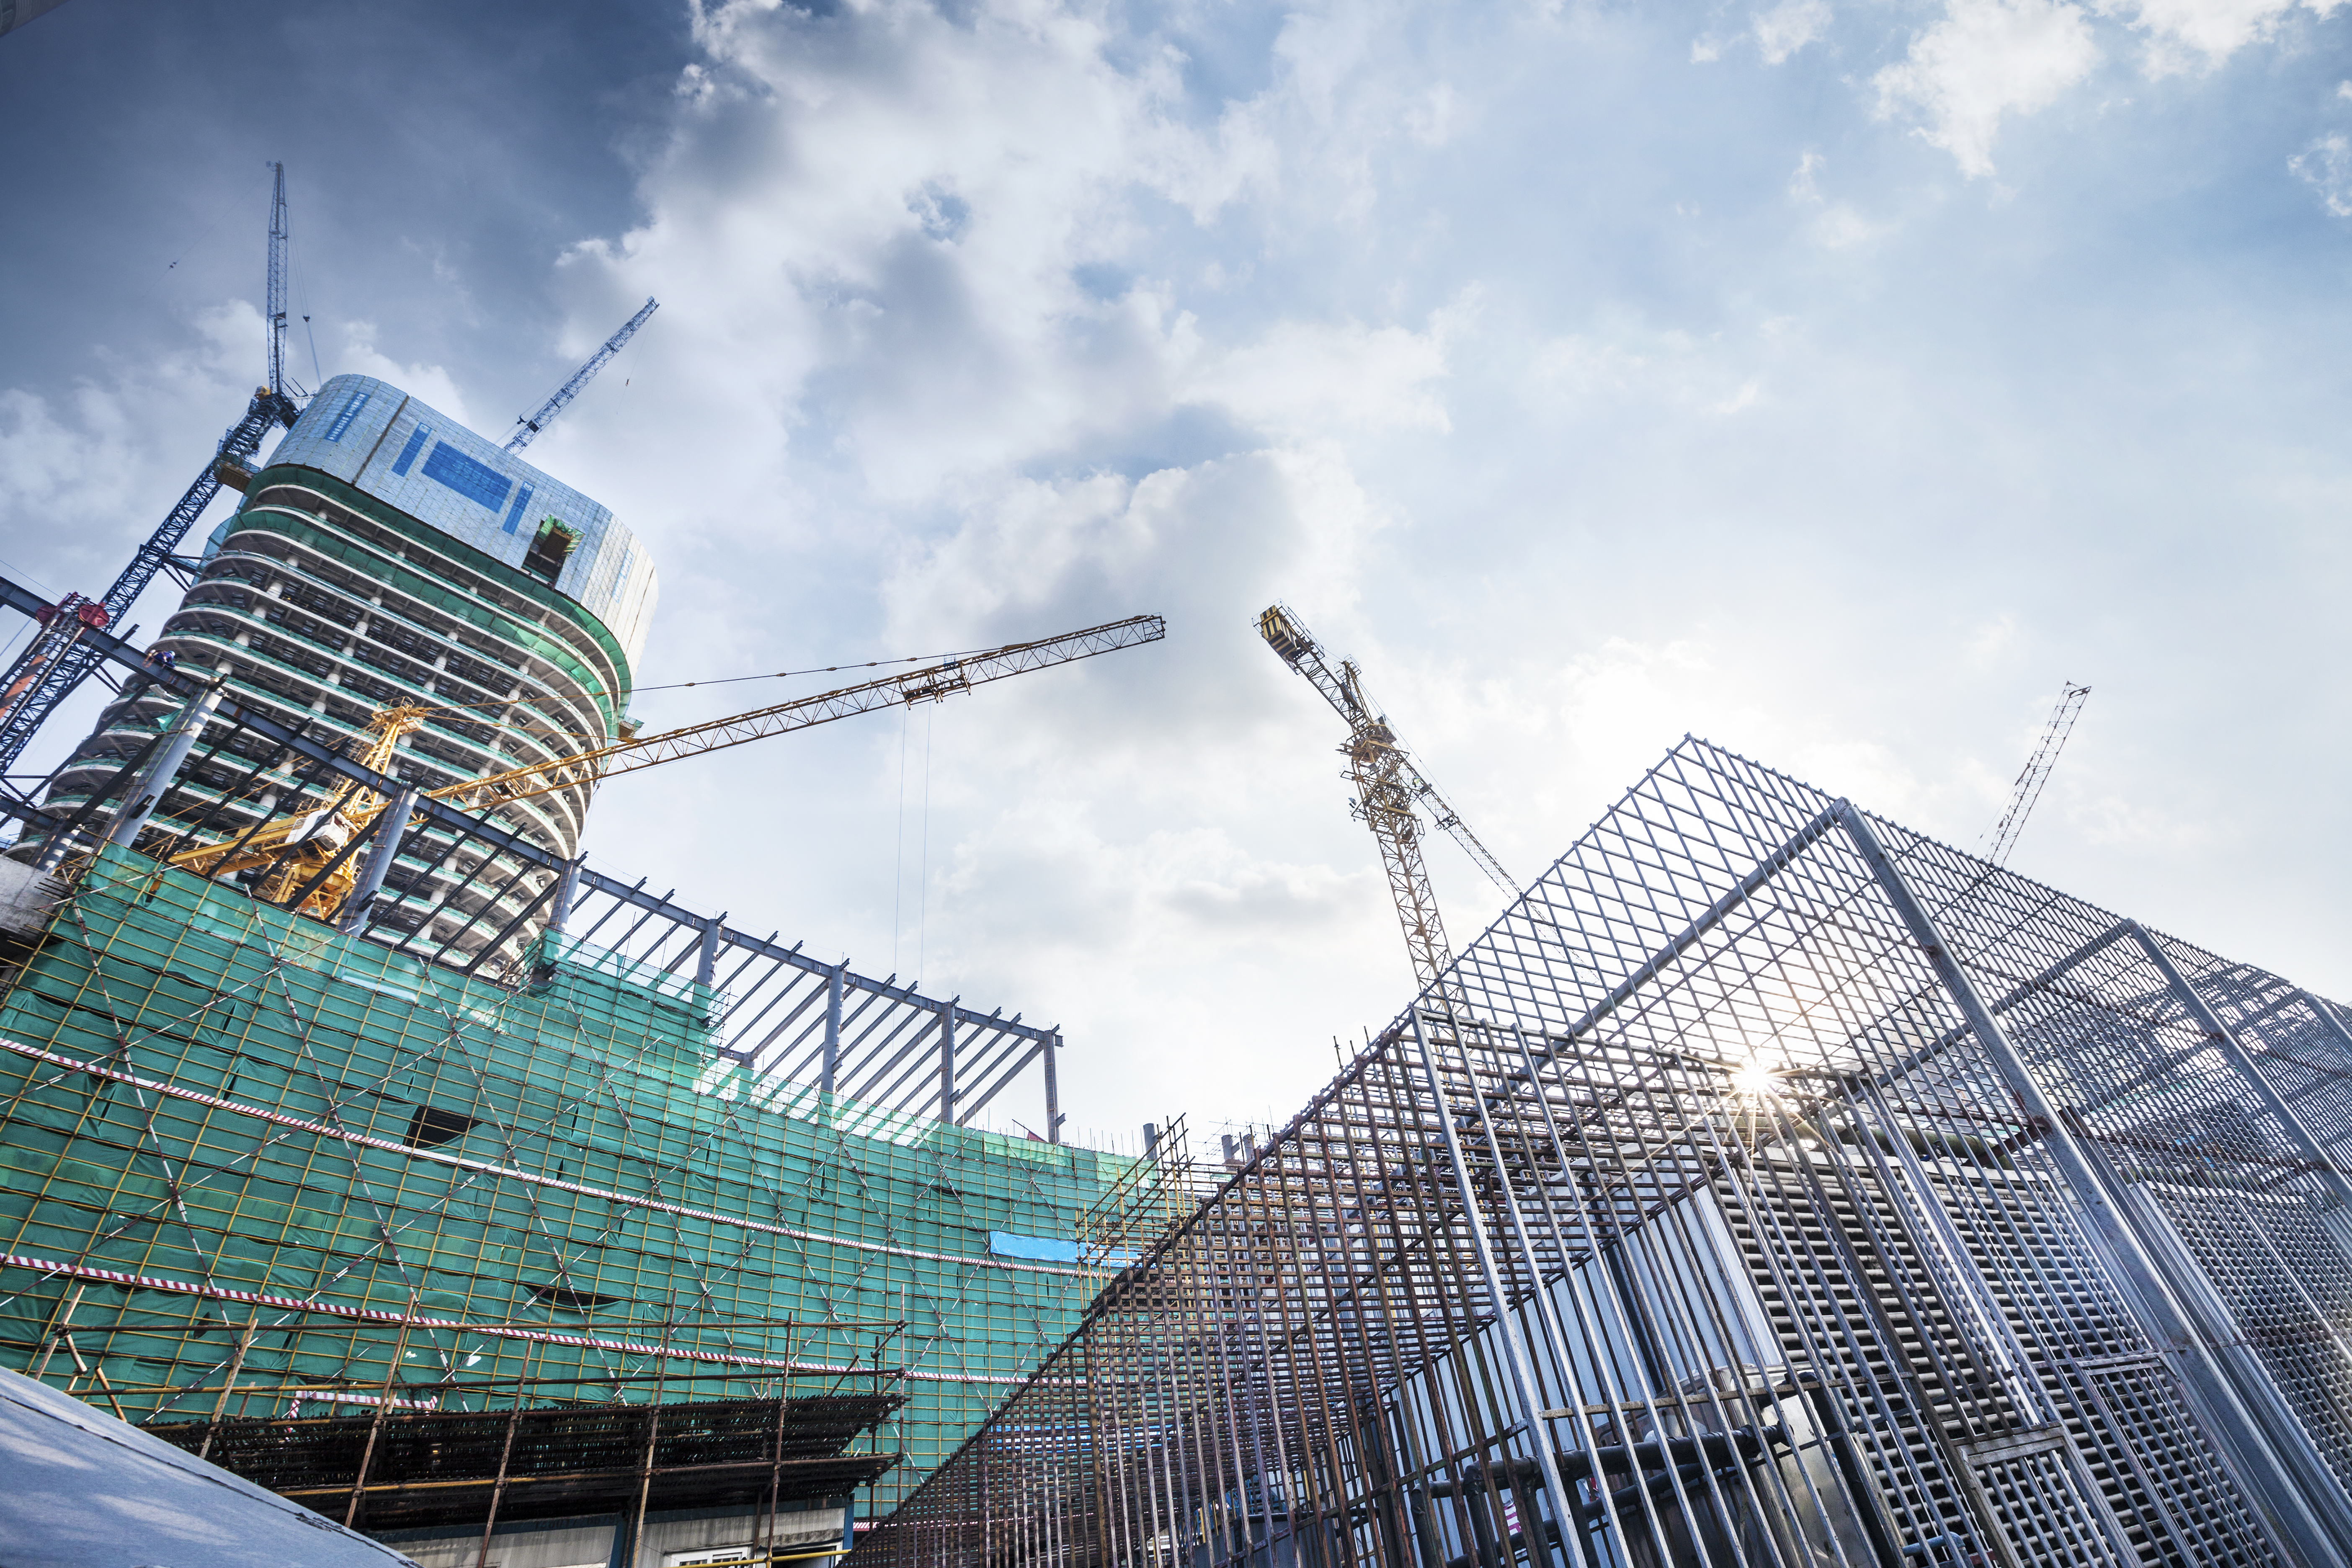 A view from below of an industrial building construction site with cranes in a city